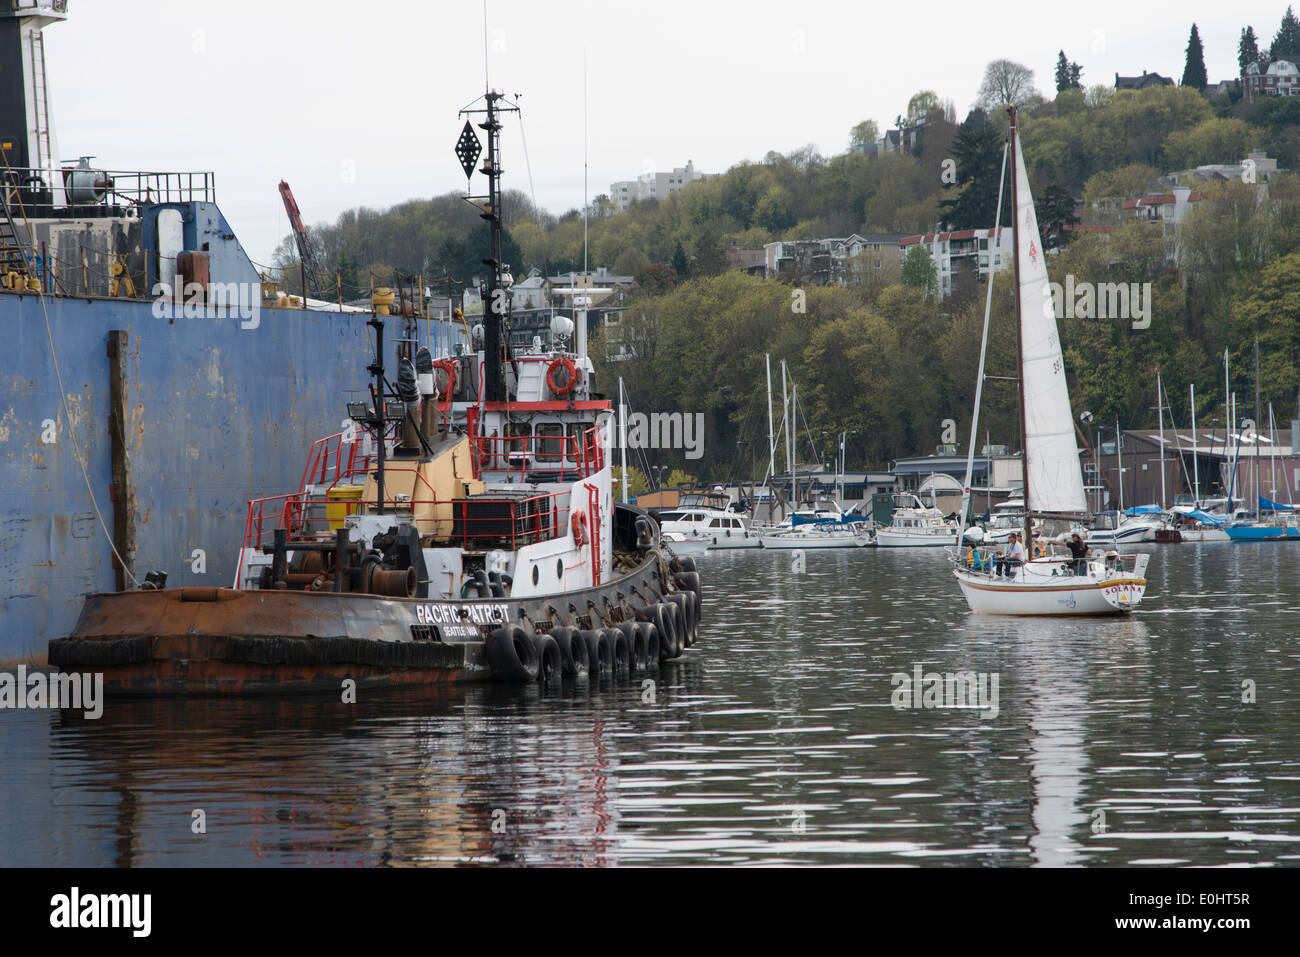 Tugboat moored at dock, Lake Union, Wallingford, Seattle, Washington State, USA - Stock Image